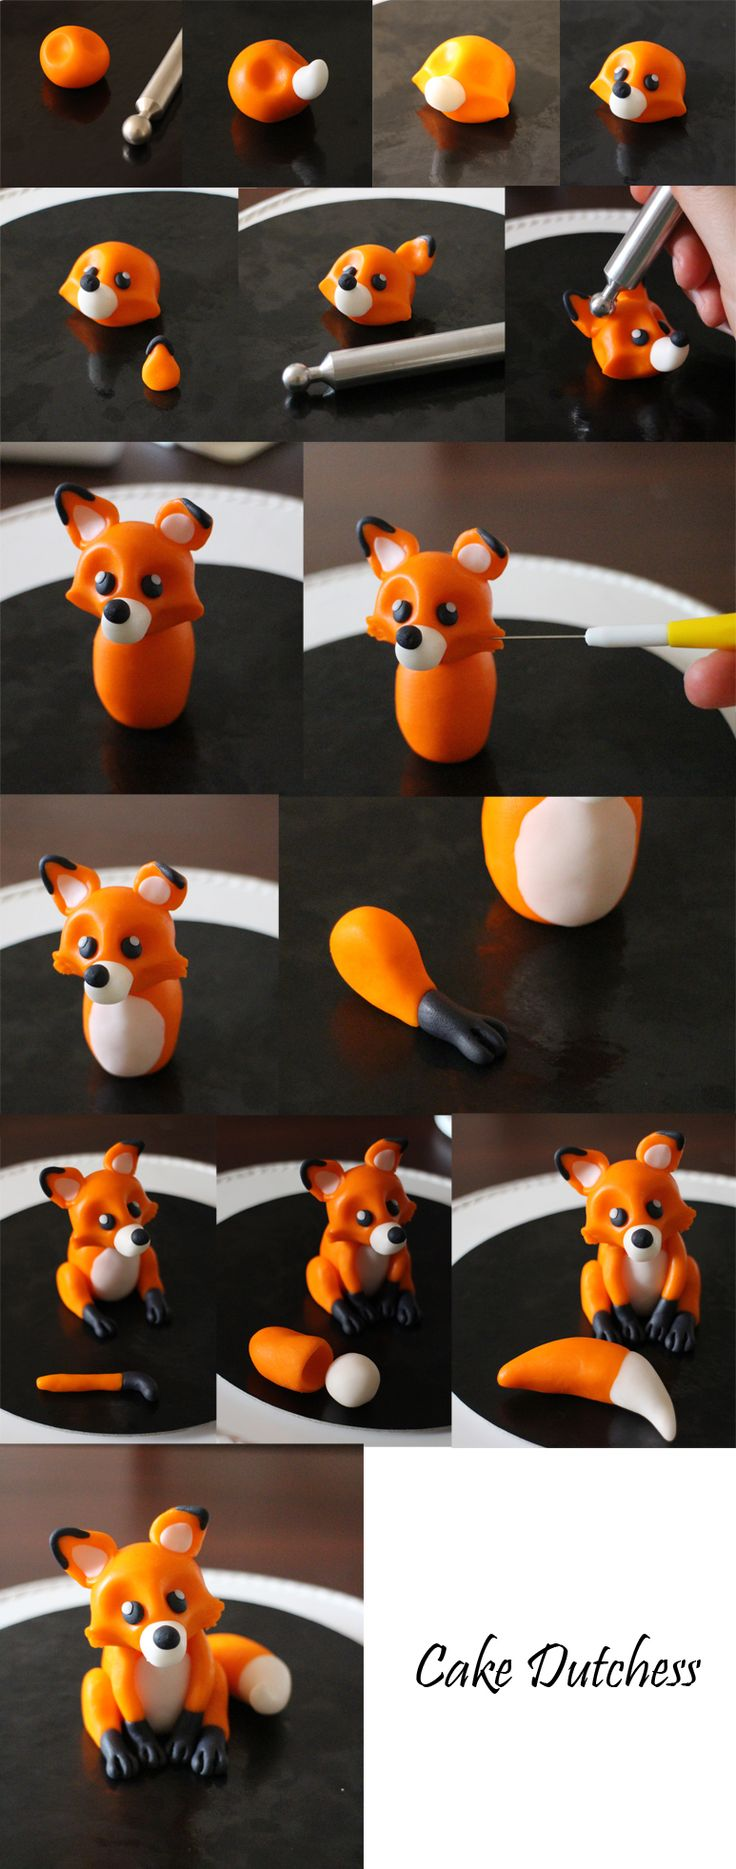 Make your own little fox with this step by step https://www.facebook.com/WeddingCakesUK